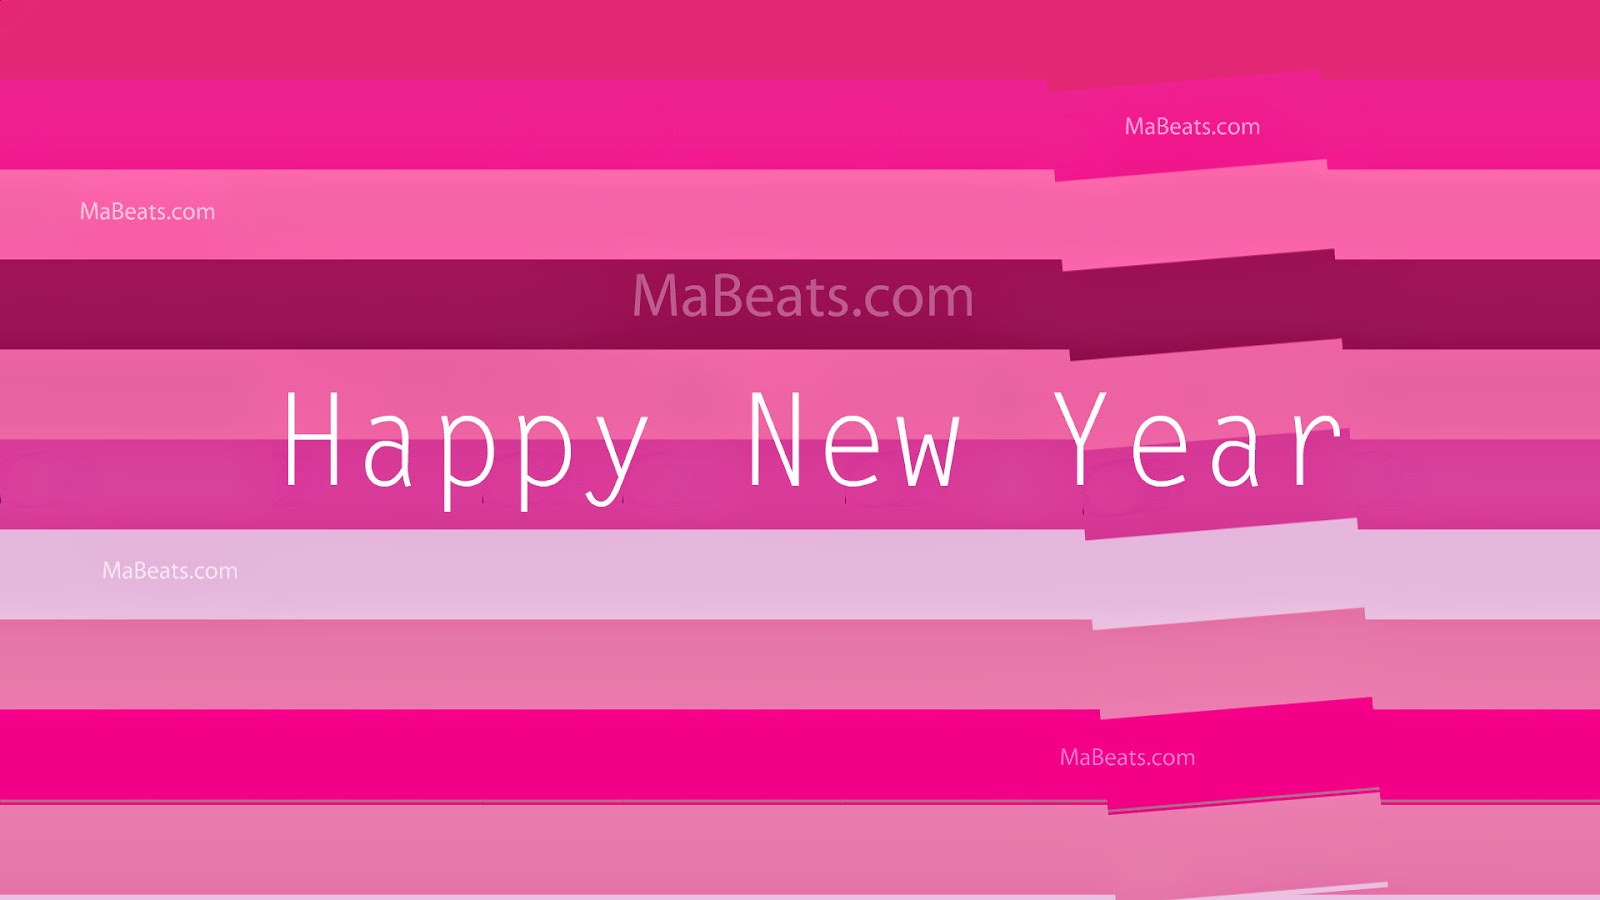 Happy pinky new year - pinky wishes